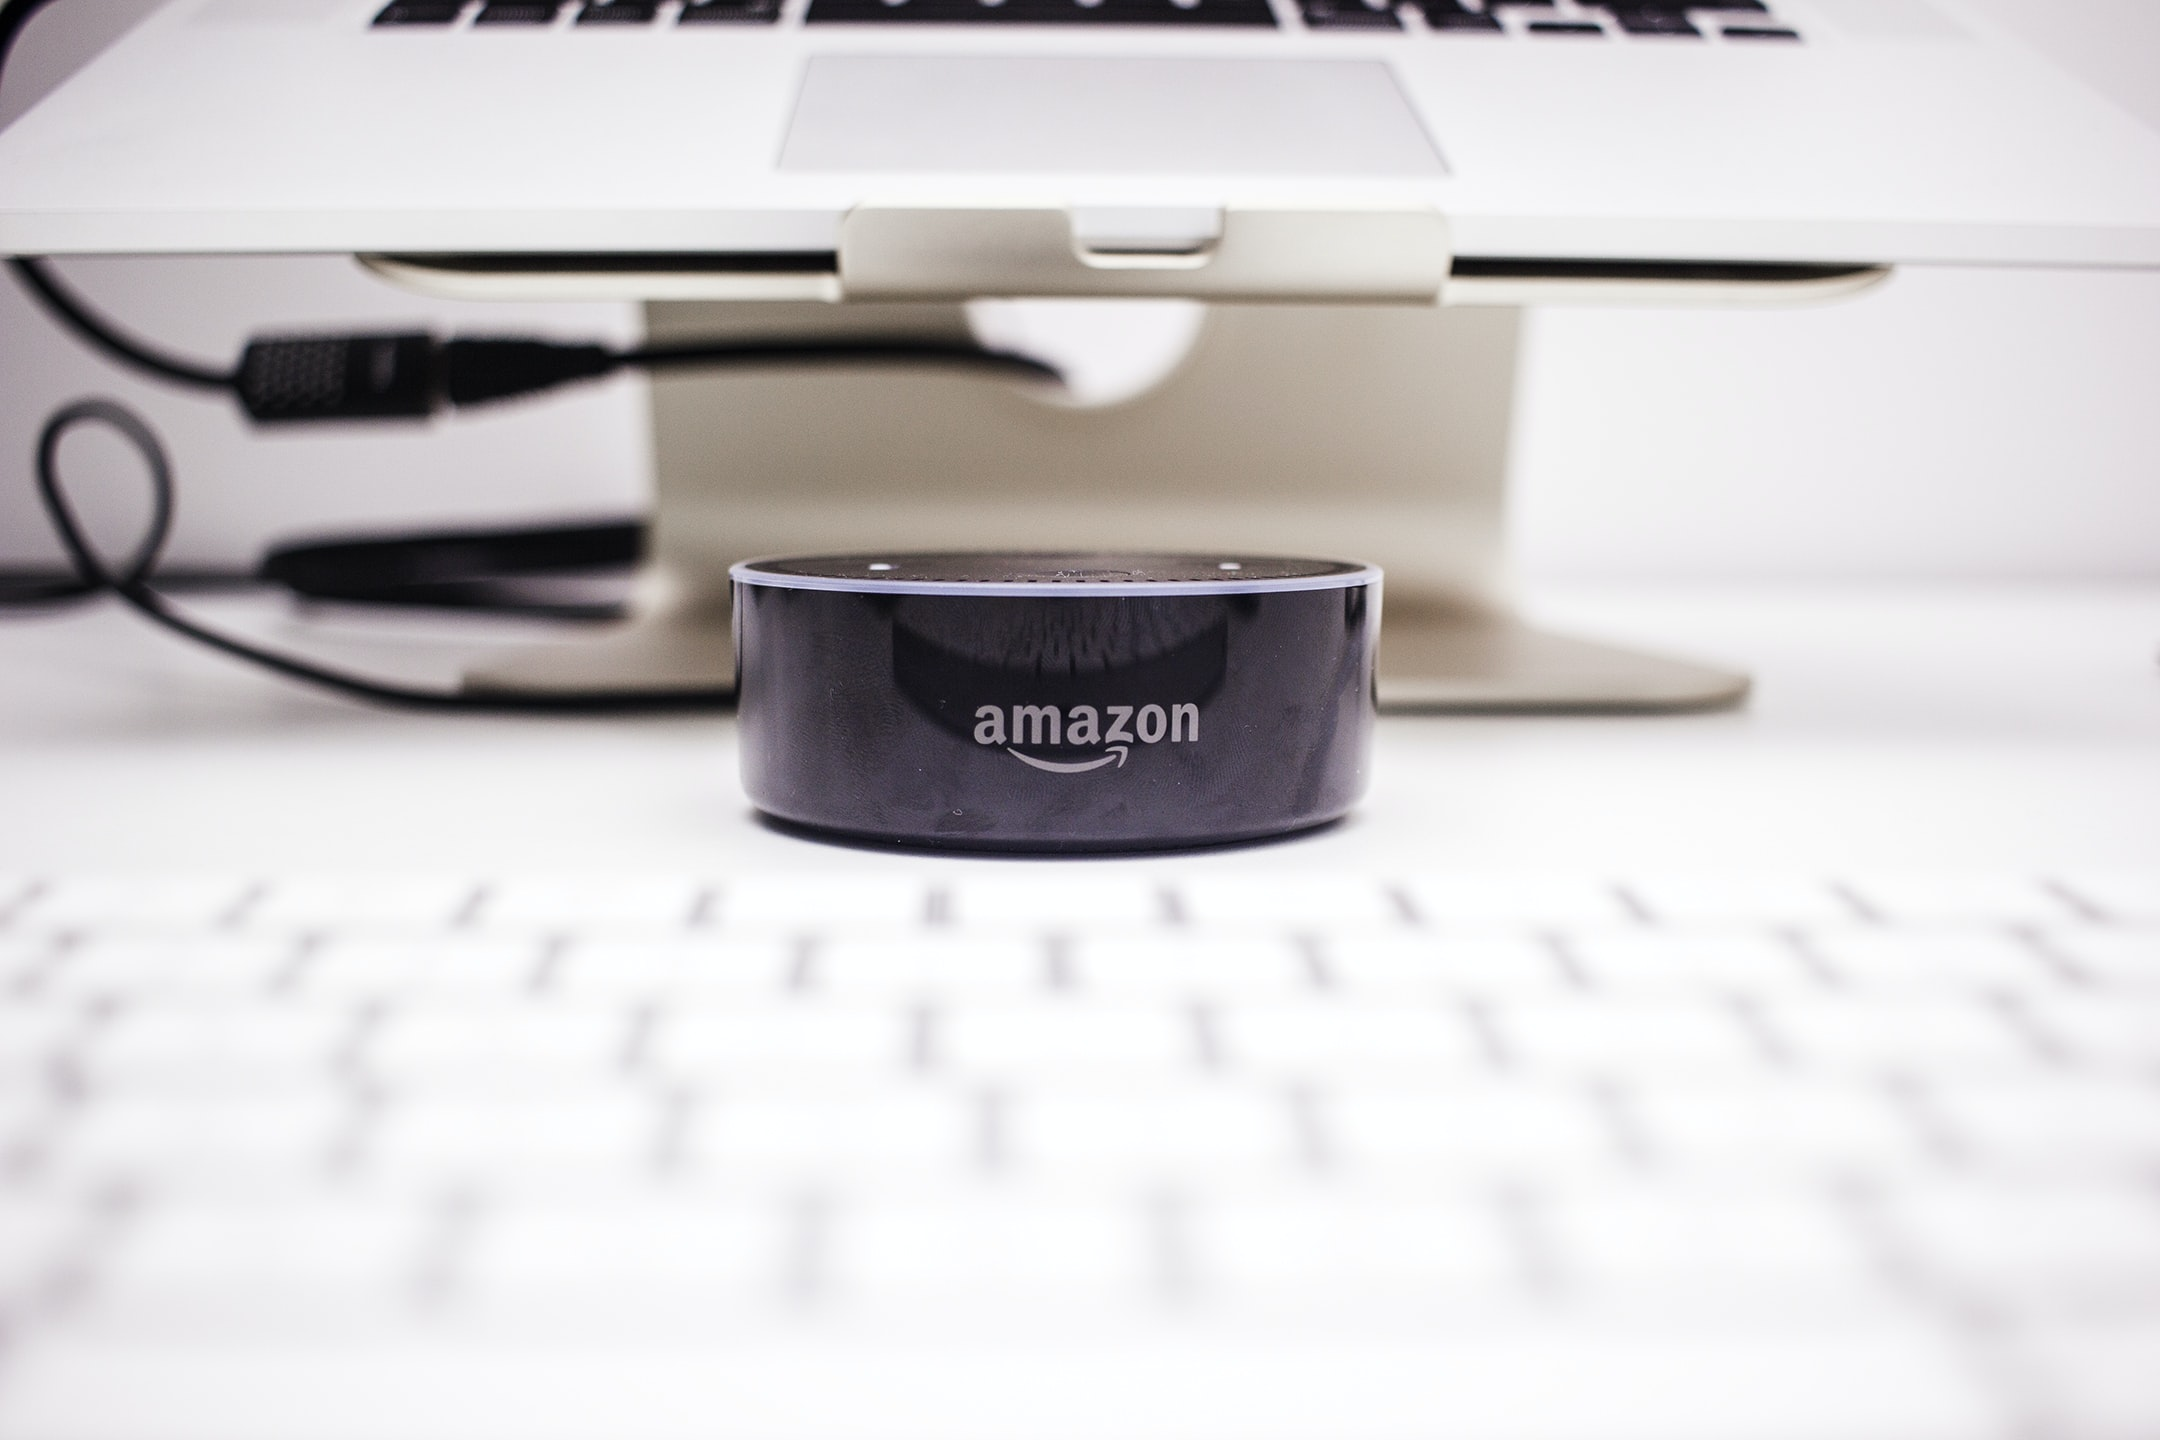 Amazon Echo Dot near laptop on stand